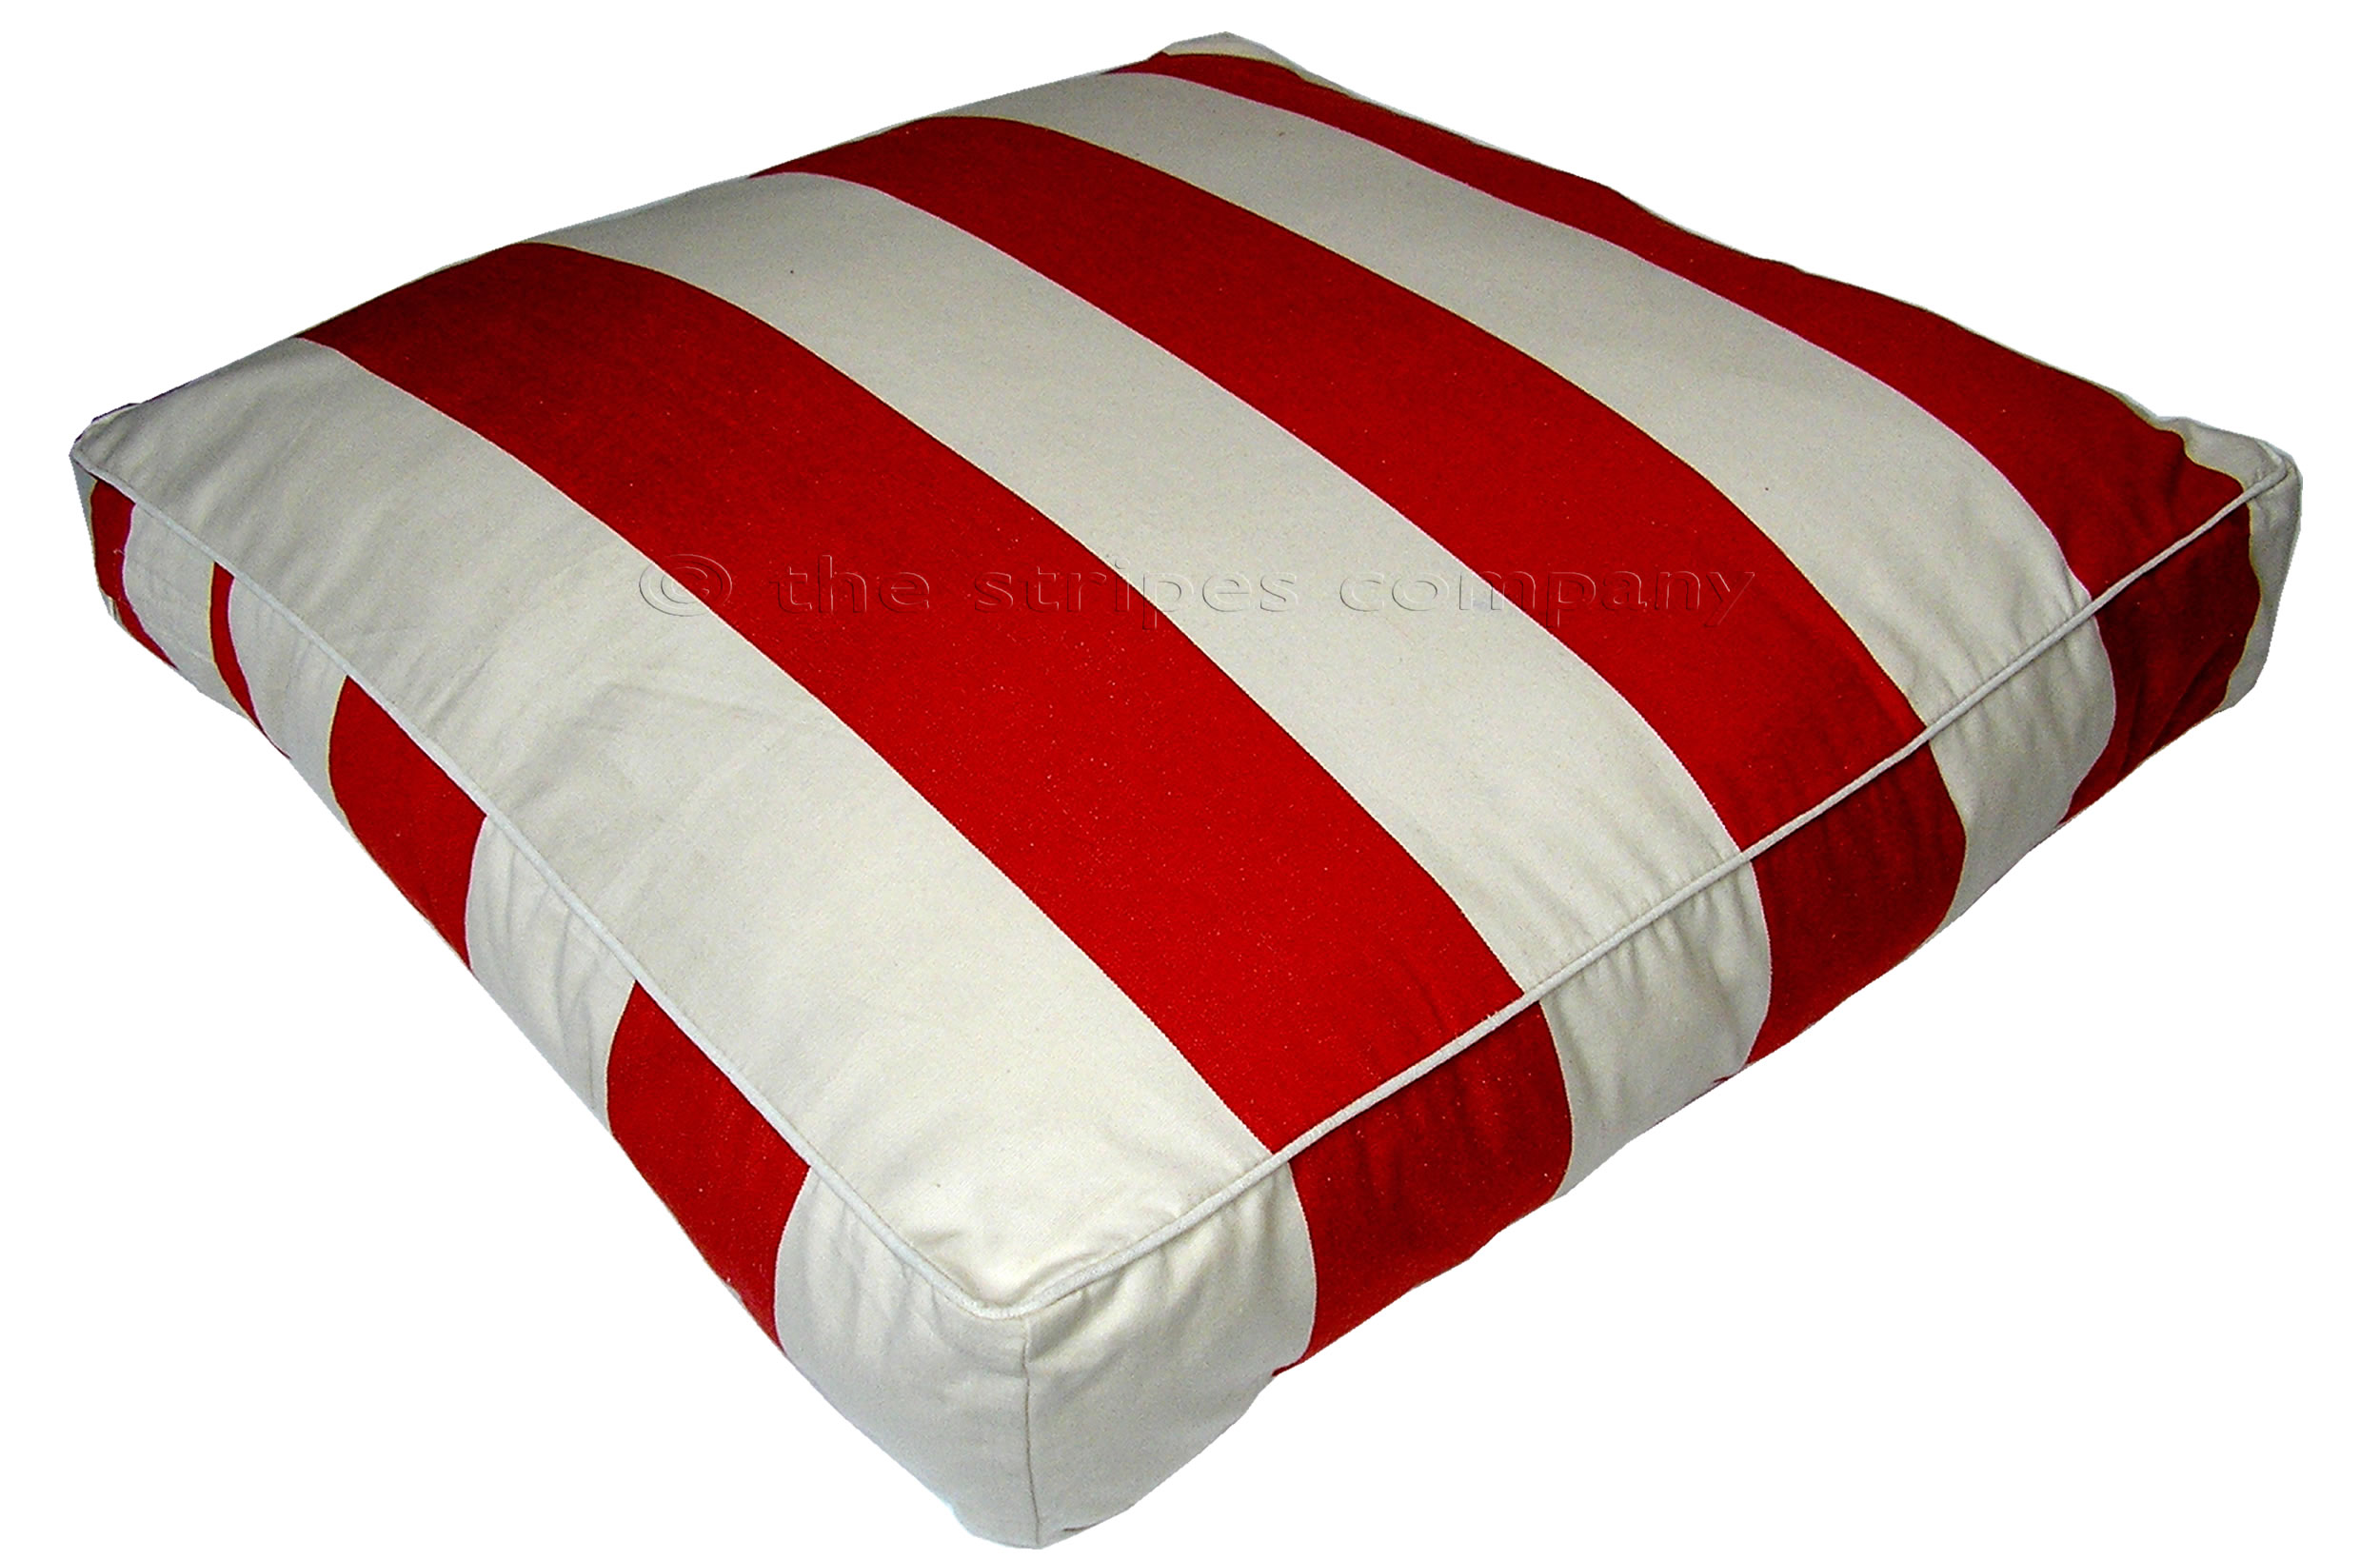 Elegant Red And White Large Floor Cushions   Juggling Stripe